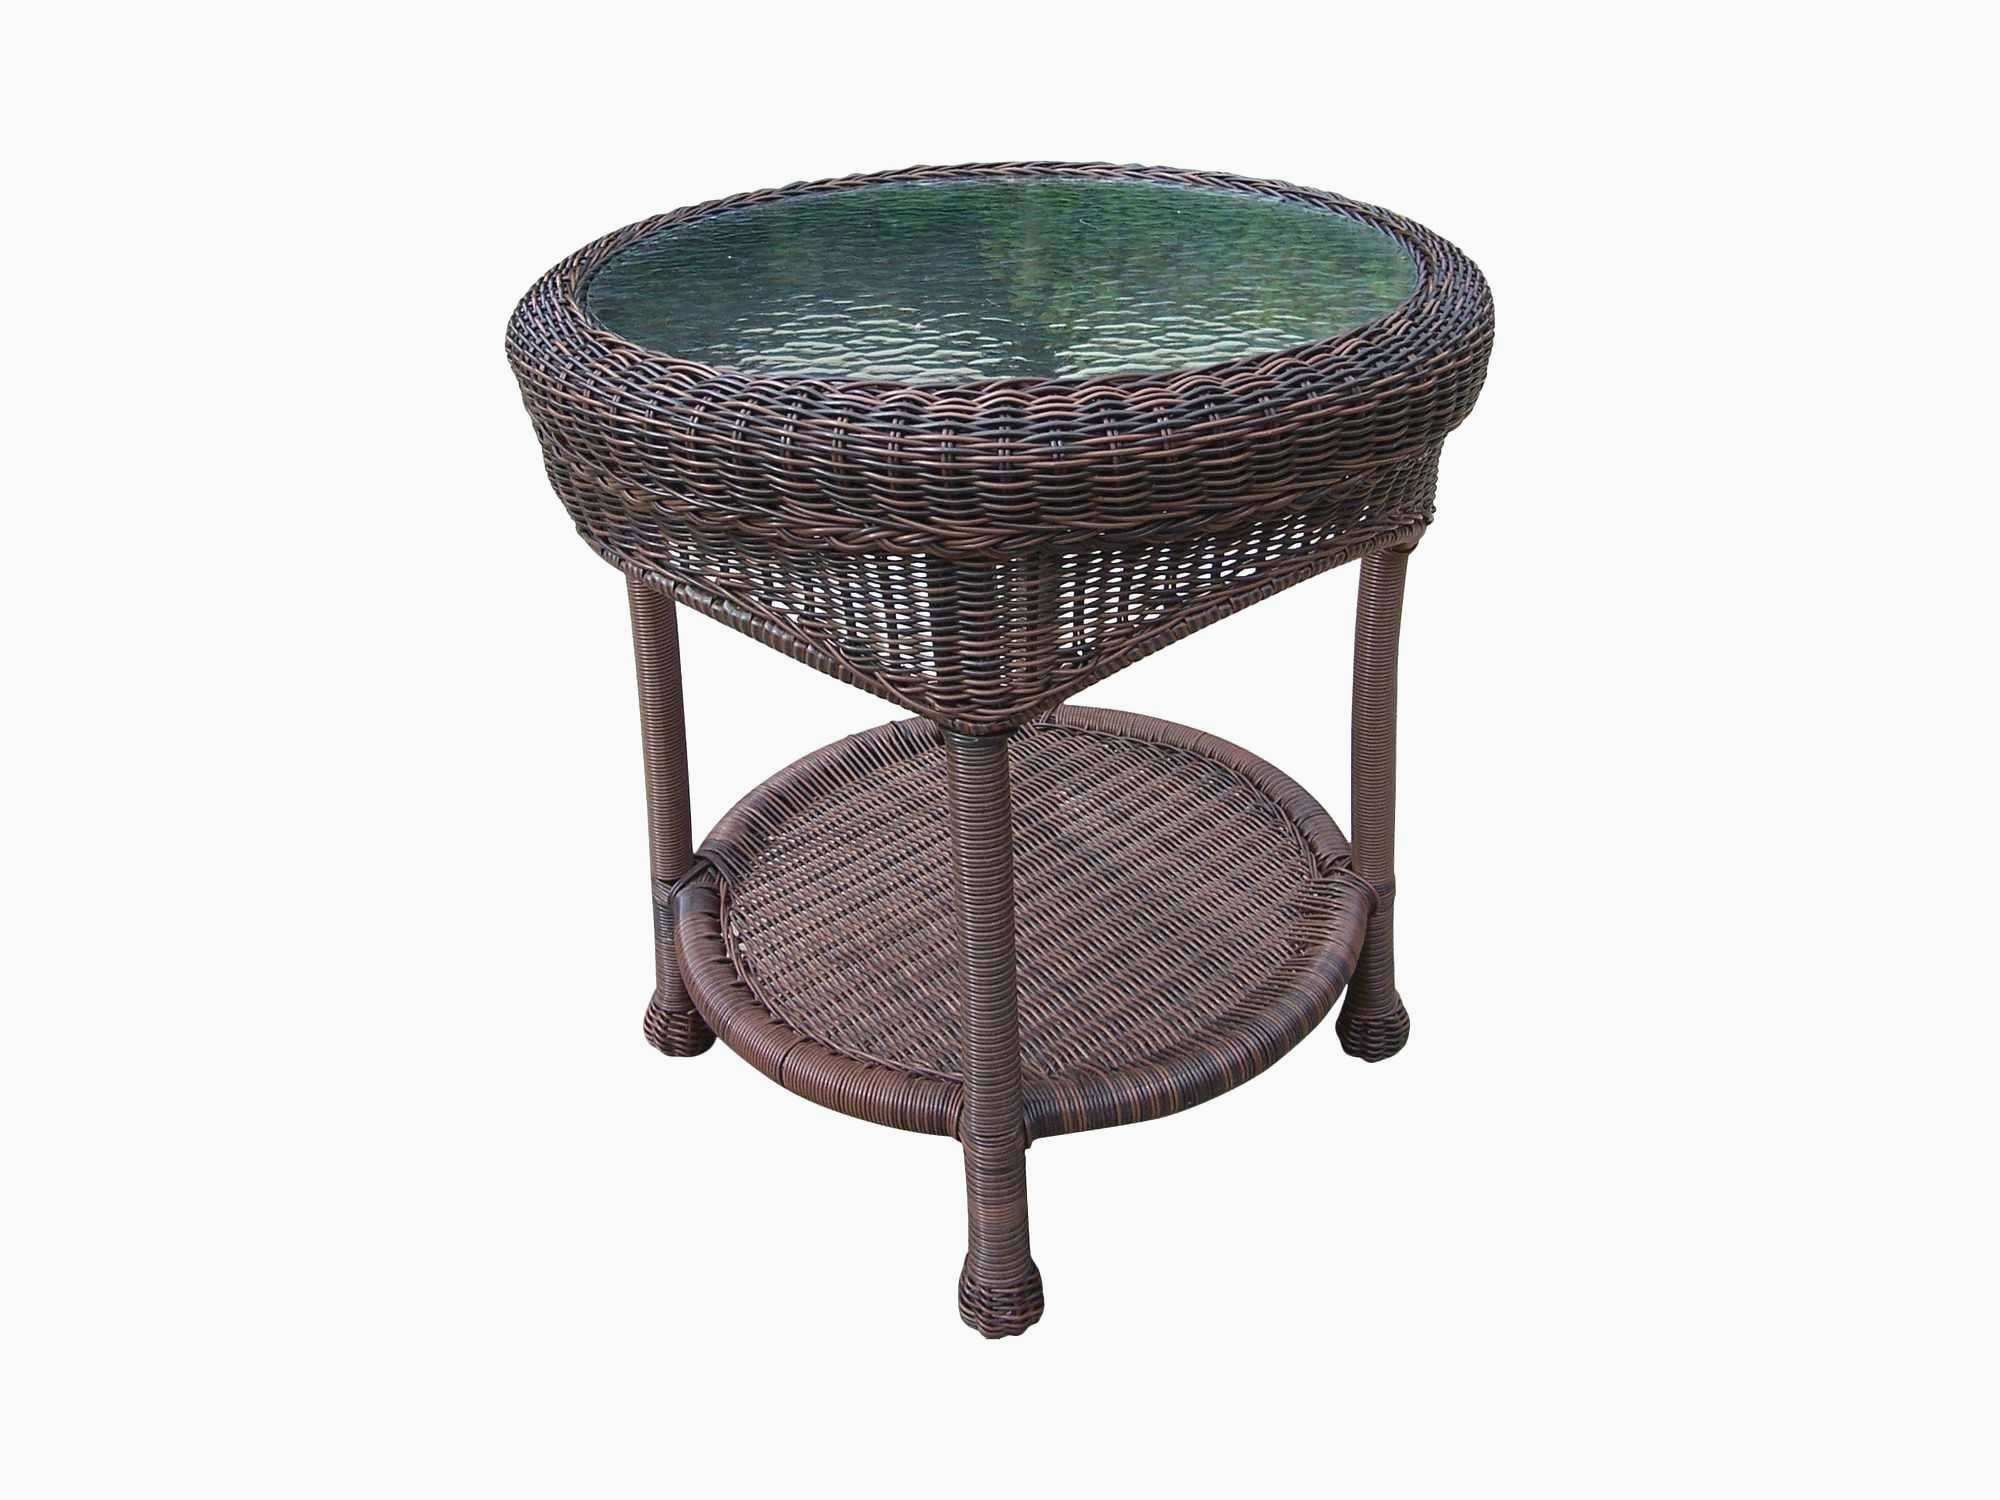 metal and tile coffee table majestic top mosaic accent outdoor ideas benestuff mirror gateleg drum storage furniture chests cabinets drop leaf kitchen chairs with wheels best